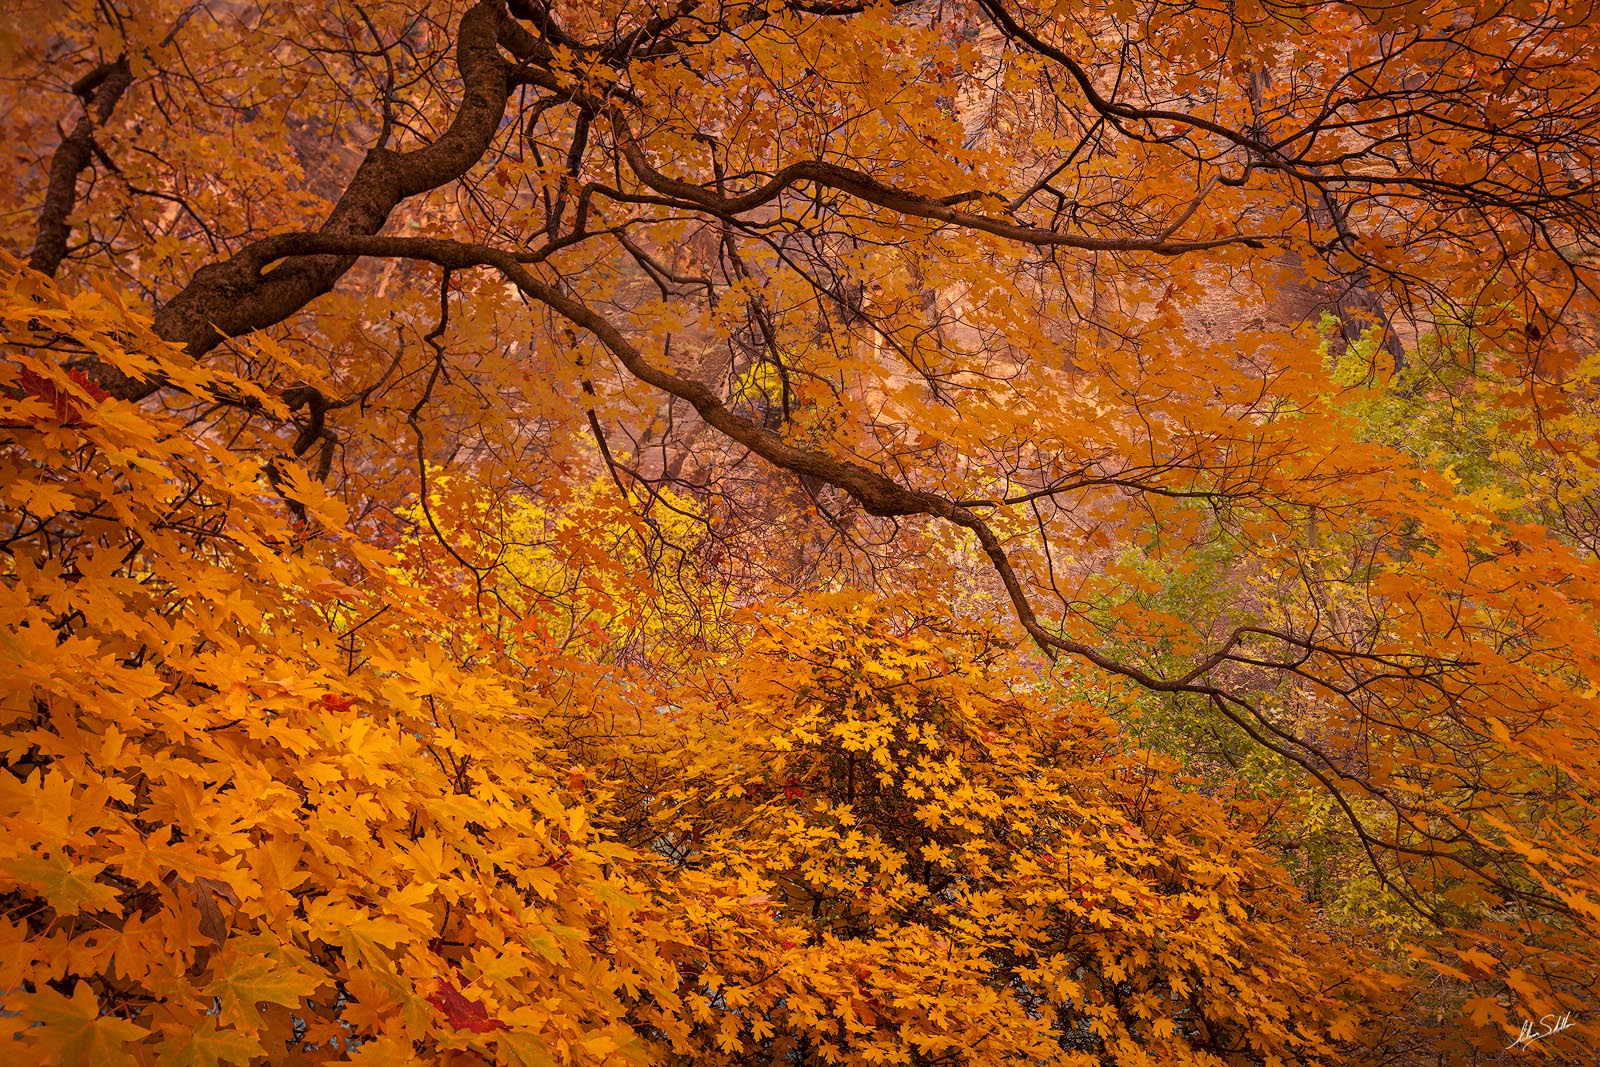 Fall color in Zion Canyon. From Zion National Park in southern Utah. © Adam Schallau, All Rights Reserved.